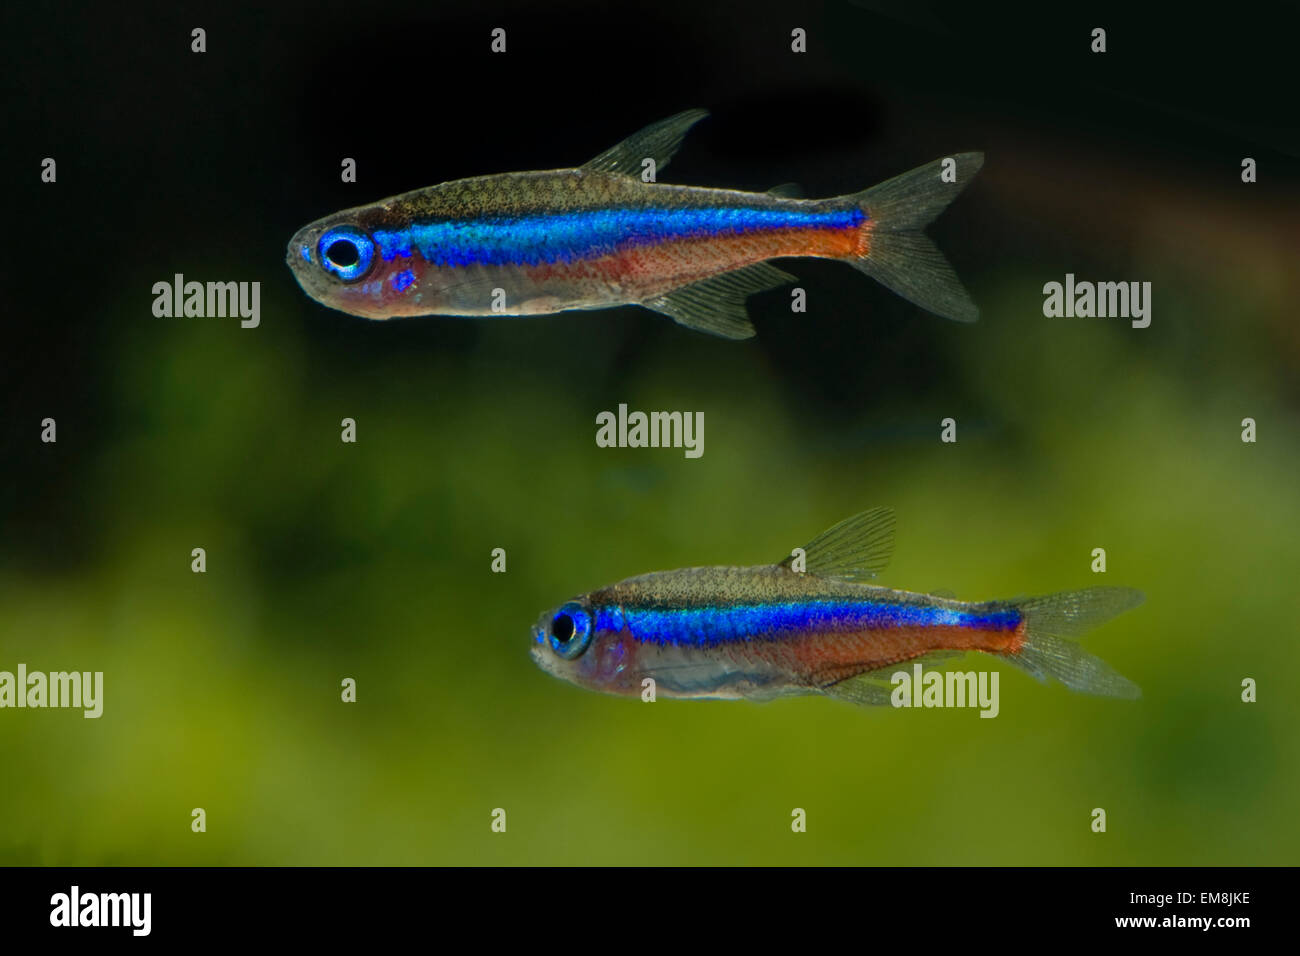 Fishes Tetra Stock Photos & Fishes Tetra Stock Images - Alamy